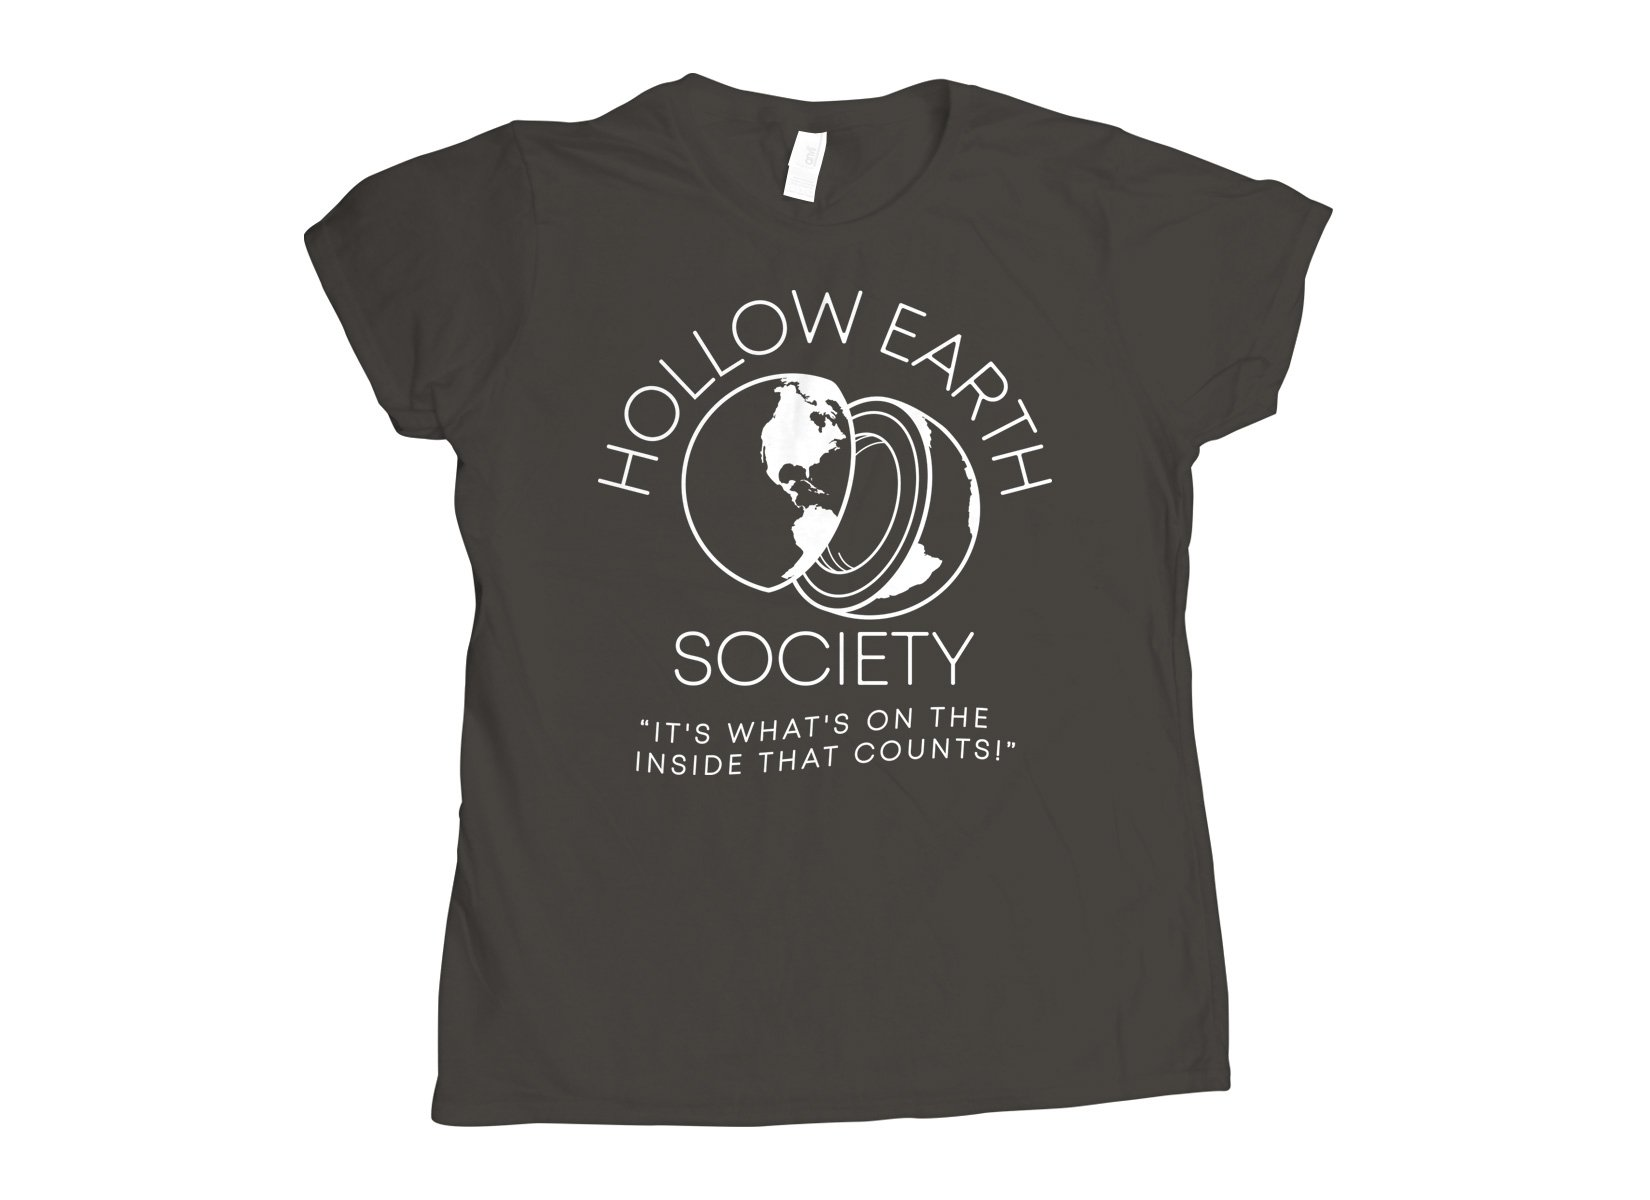 Hollow Earth Society on Womens T-Shirt